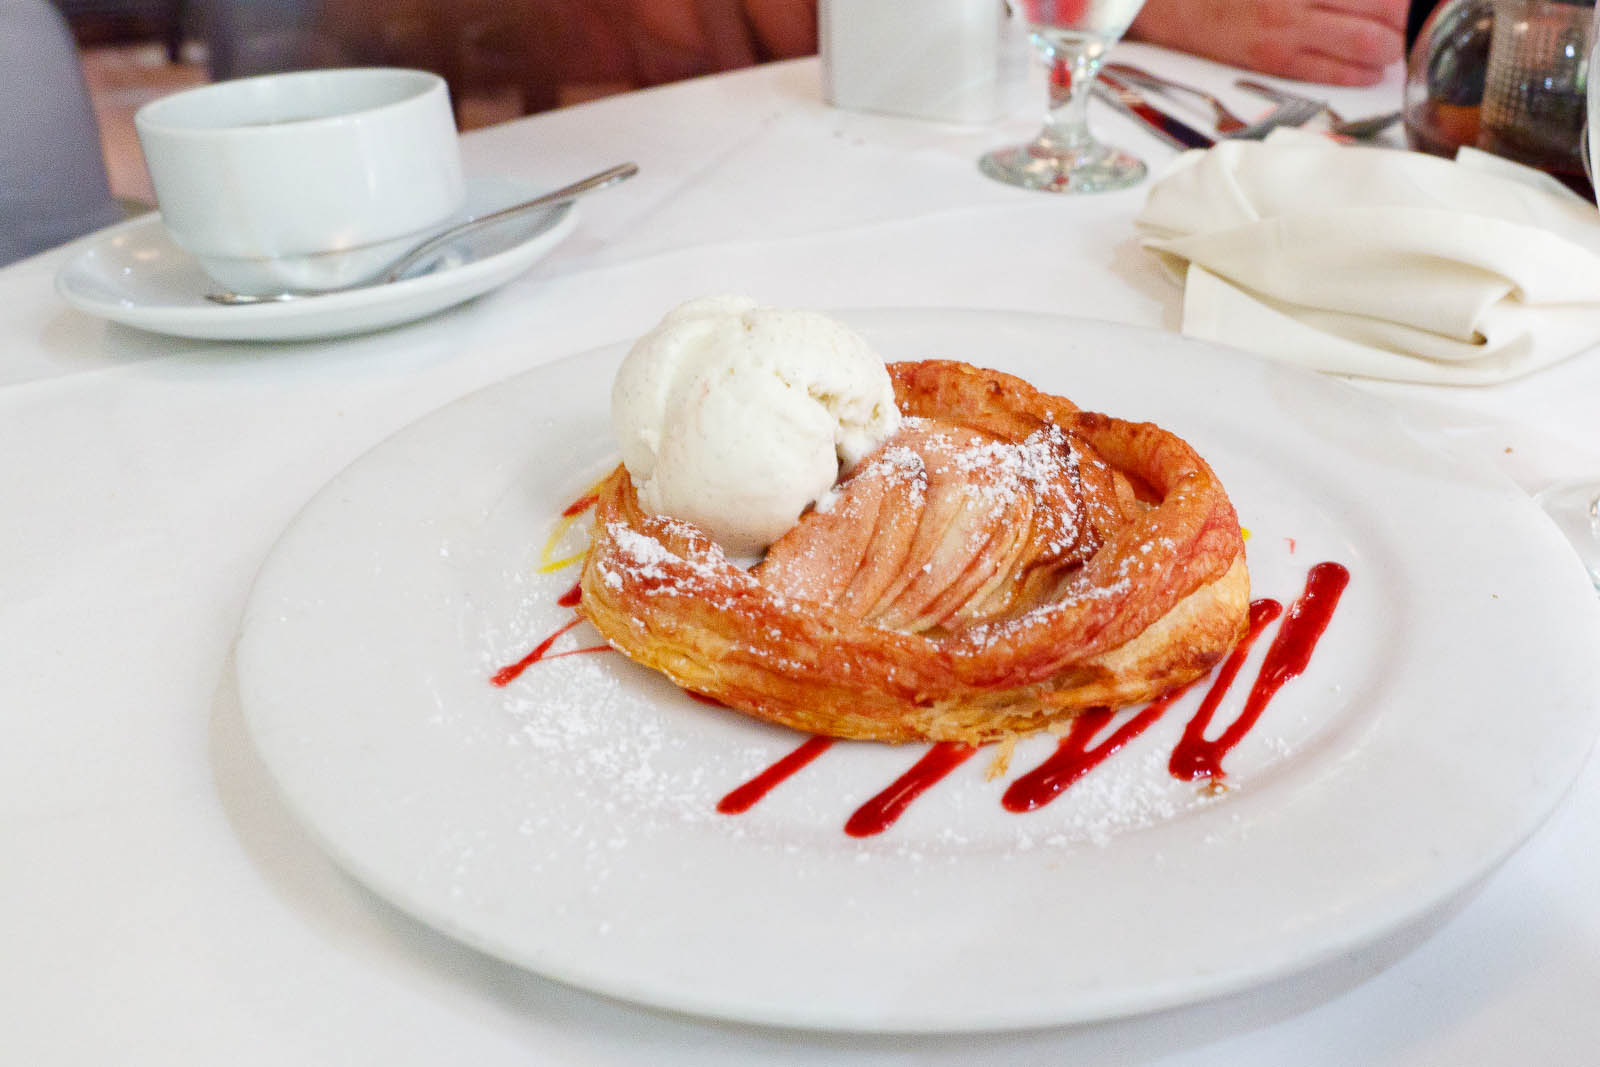 Milopita - warm apple tart with vanilla ice cream